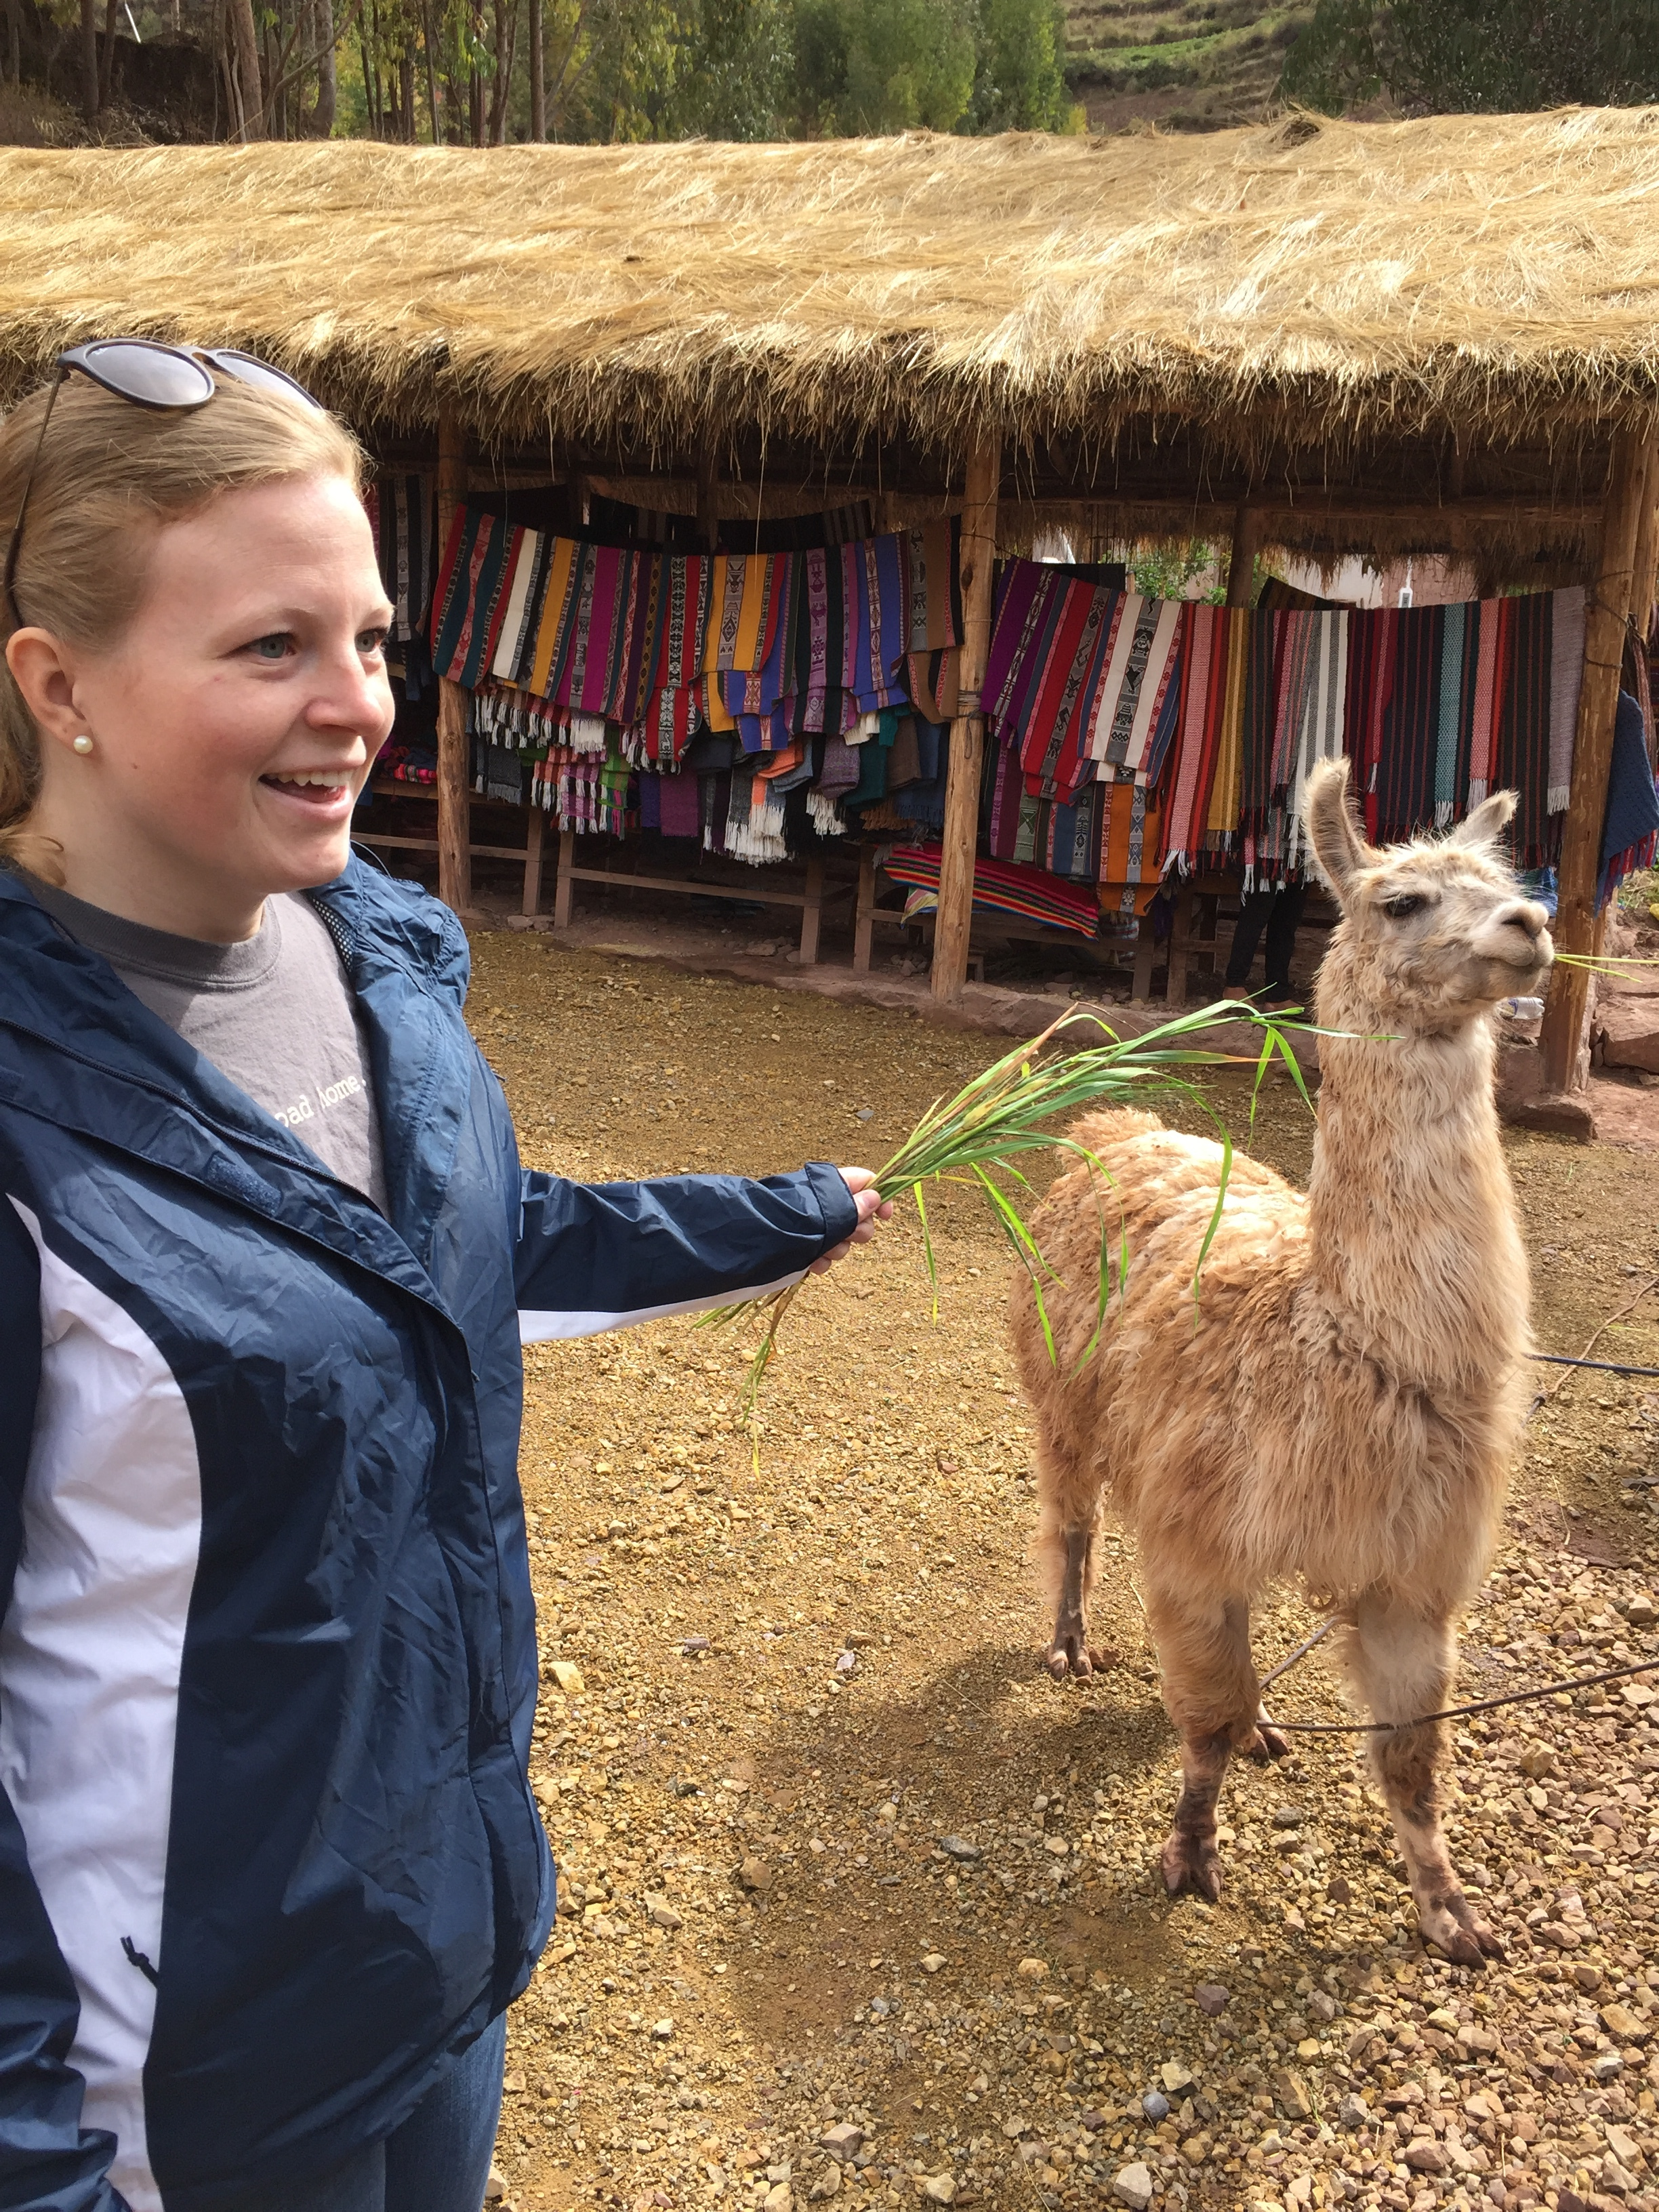 Travel makes you do weird things like: get way too close to llamas in Peru.